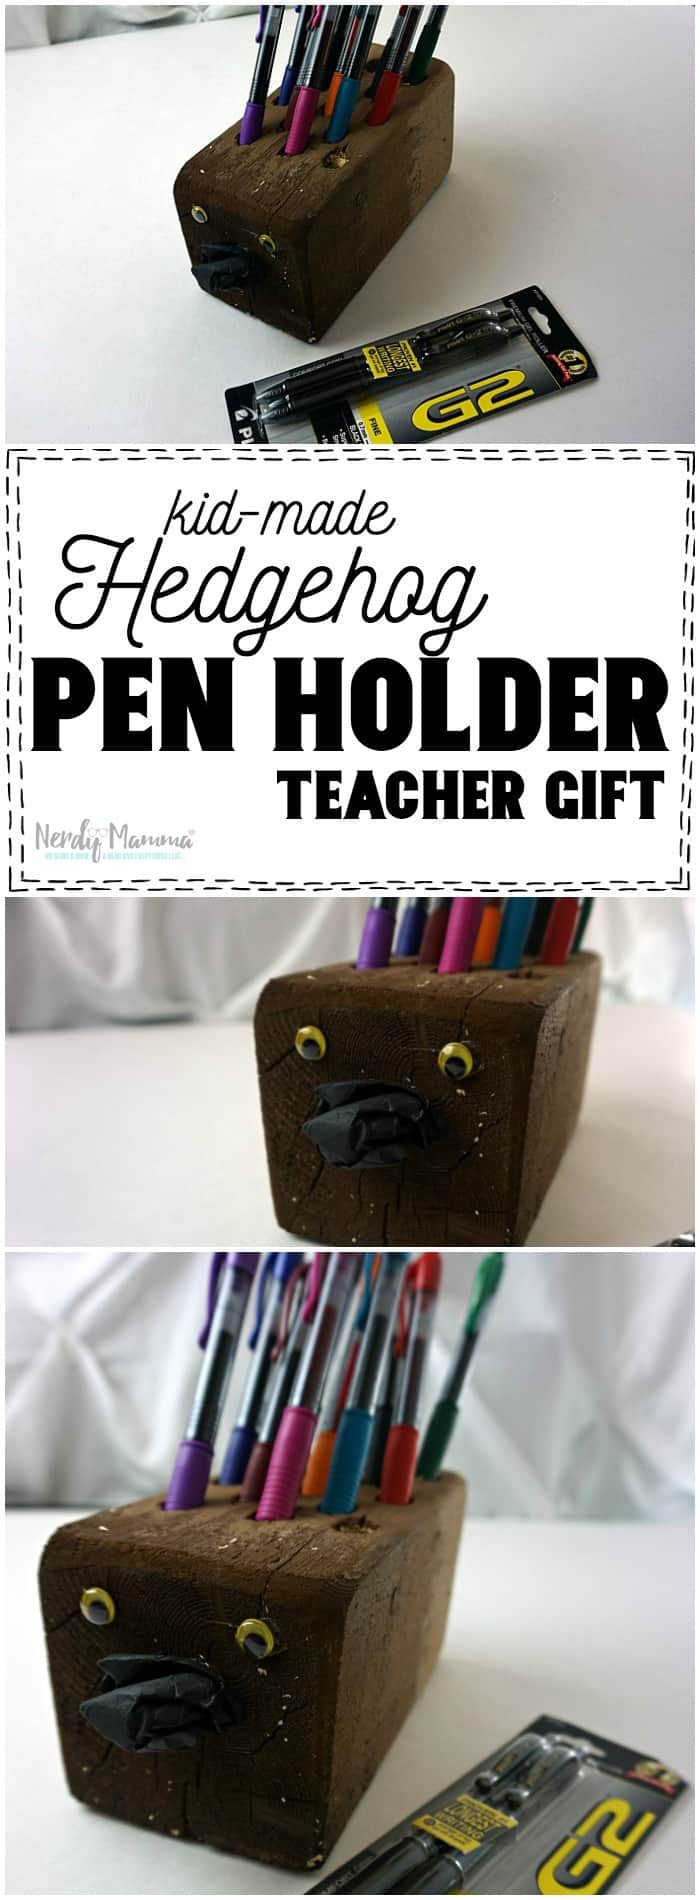 I love this kid-made pen holder for a teacher gift--it's so cute! And easy, too!